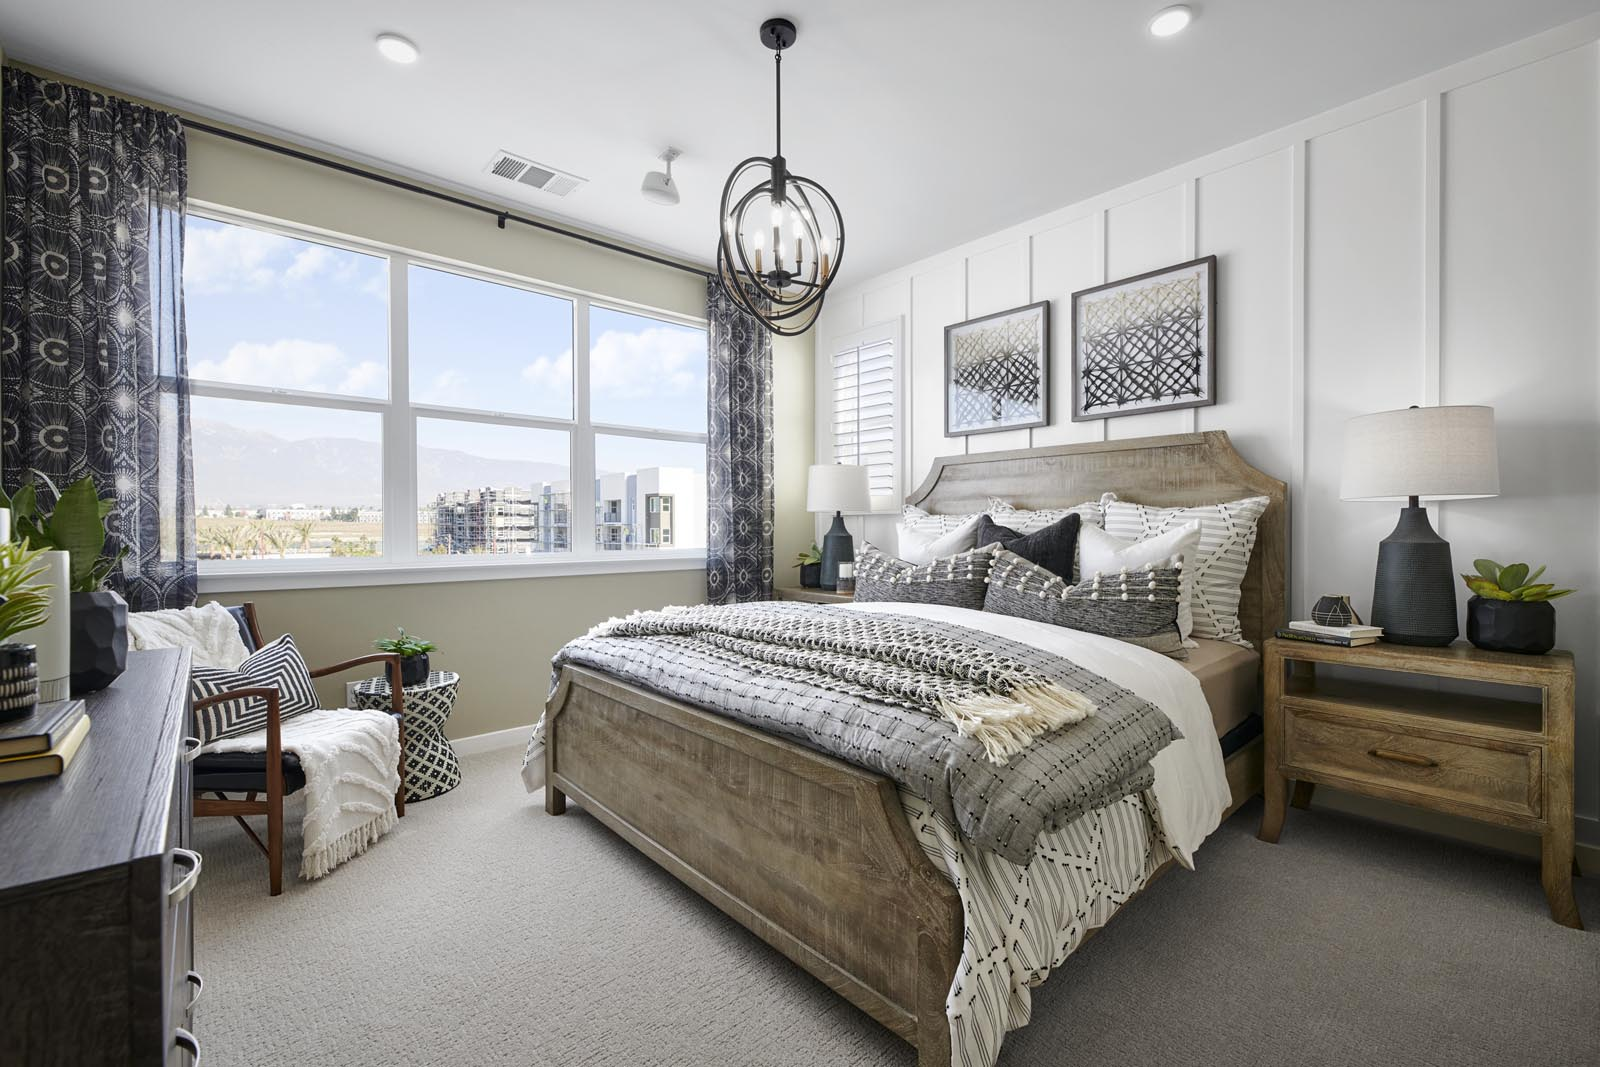 Master Bedroom | Residence 2 | Enliven | New Homes in Rancho Cucamonga, CA | Van Daele Homes